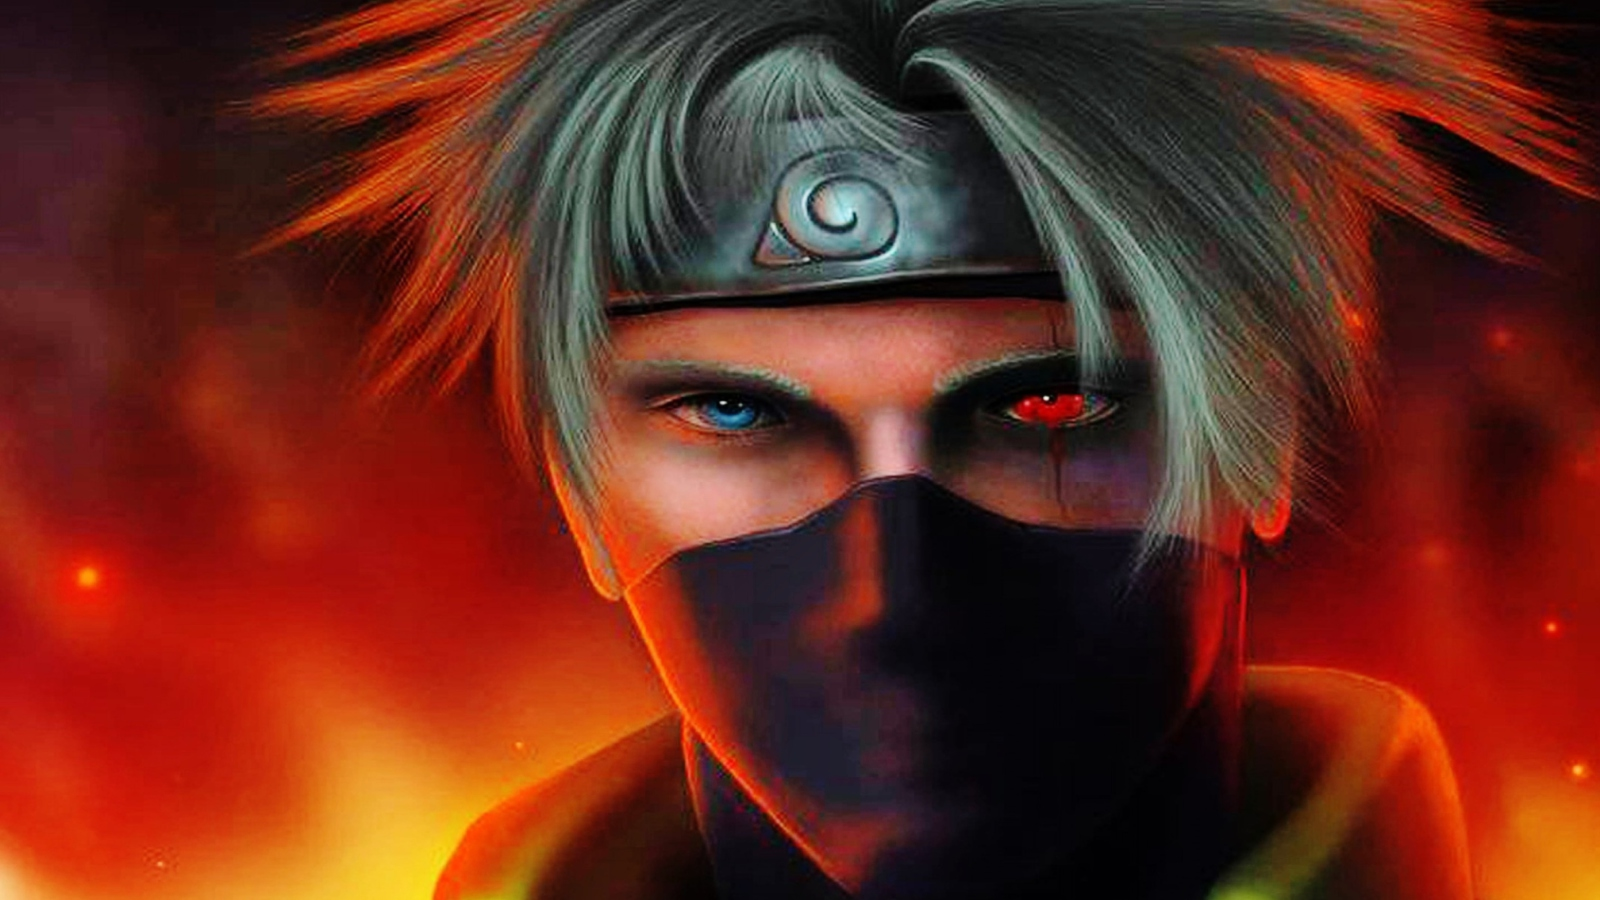 Naruto Wallpaper For Widescreen Desktop PC 1600x900